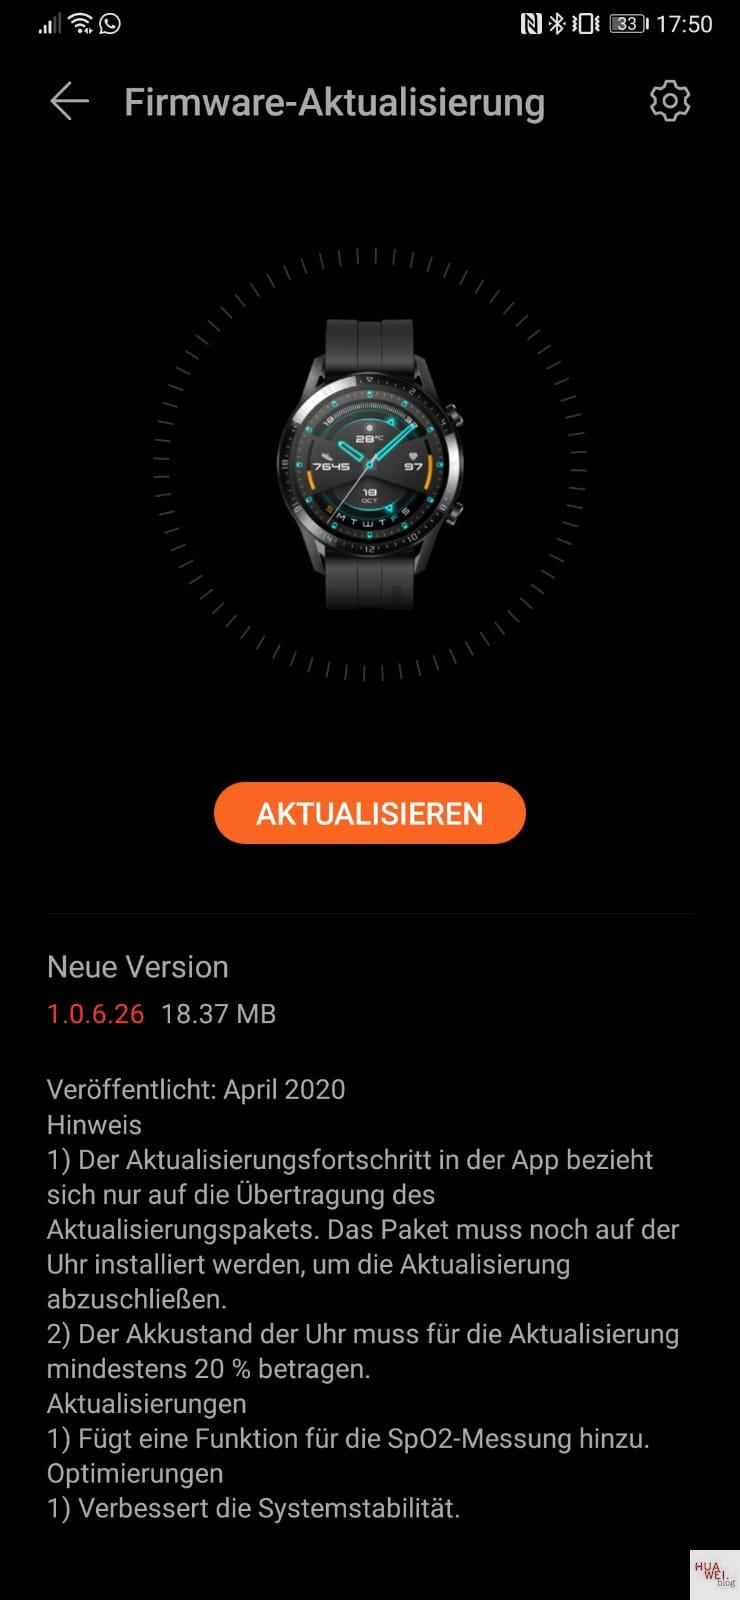 Huawei Watch GT2e SpO2 update